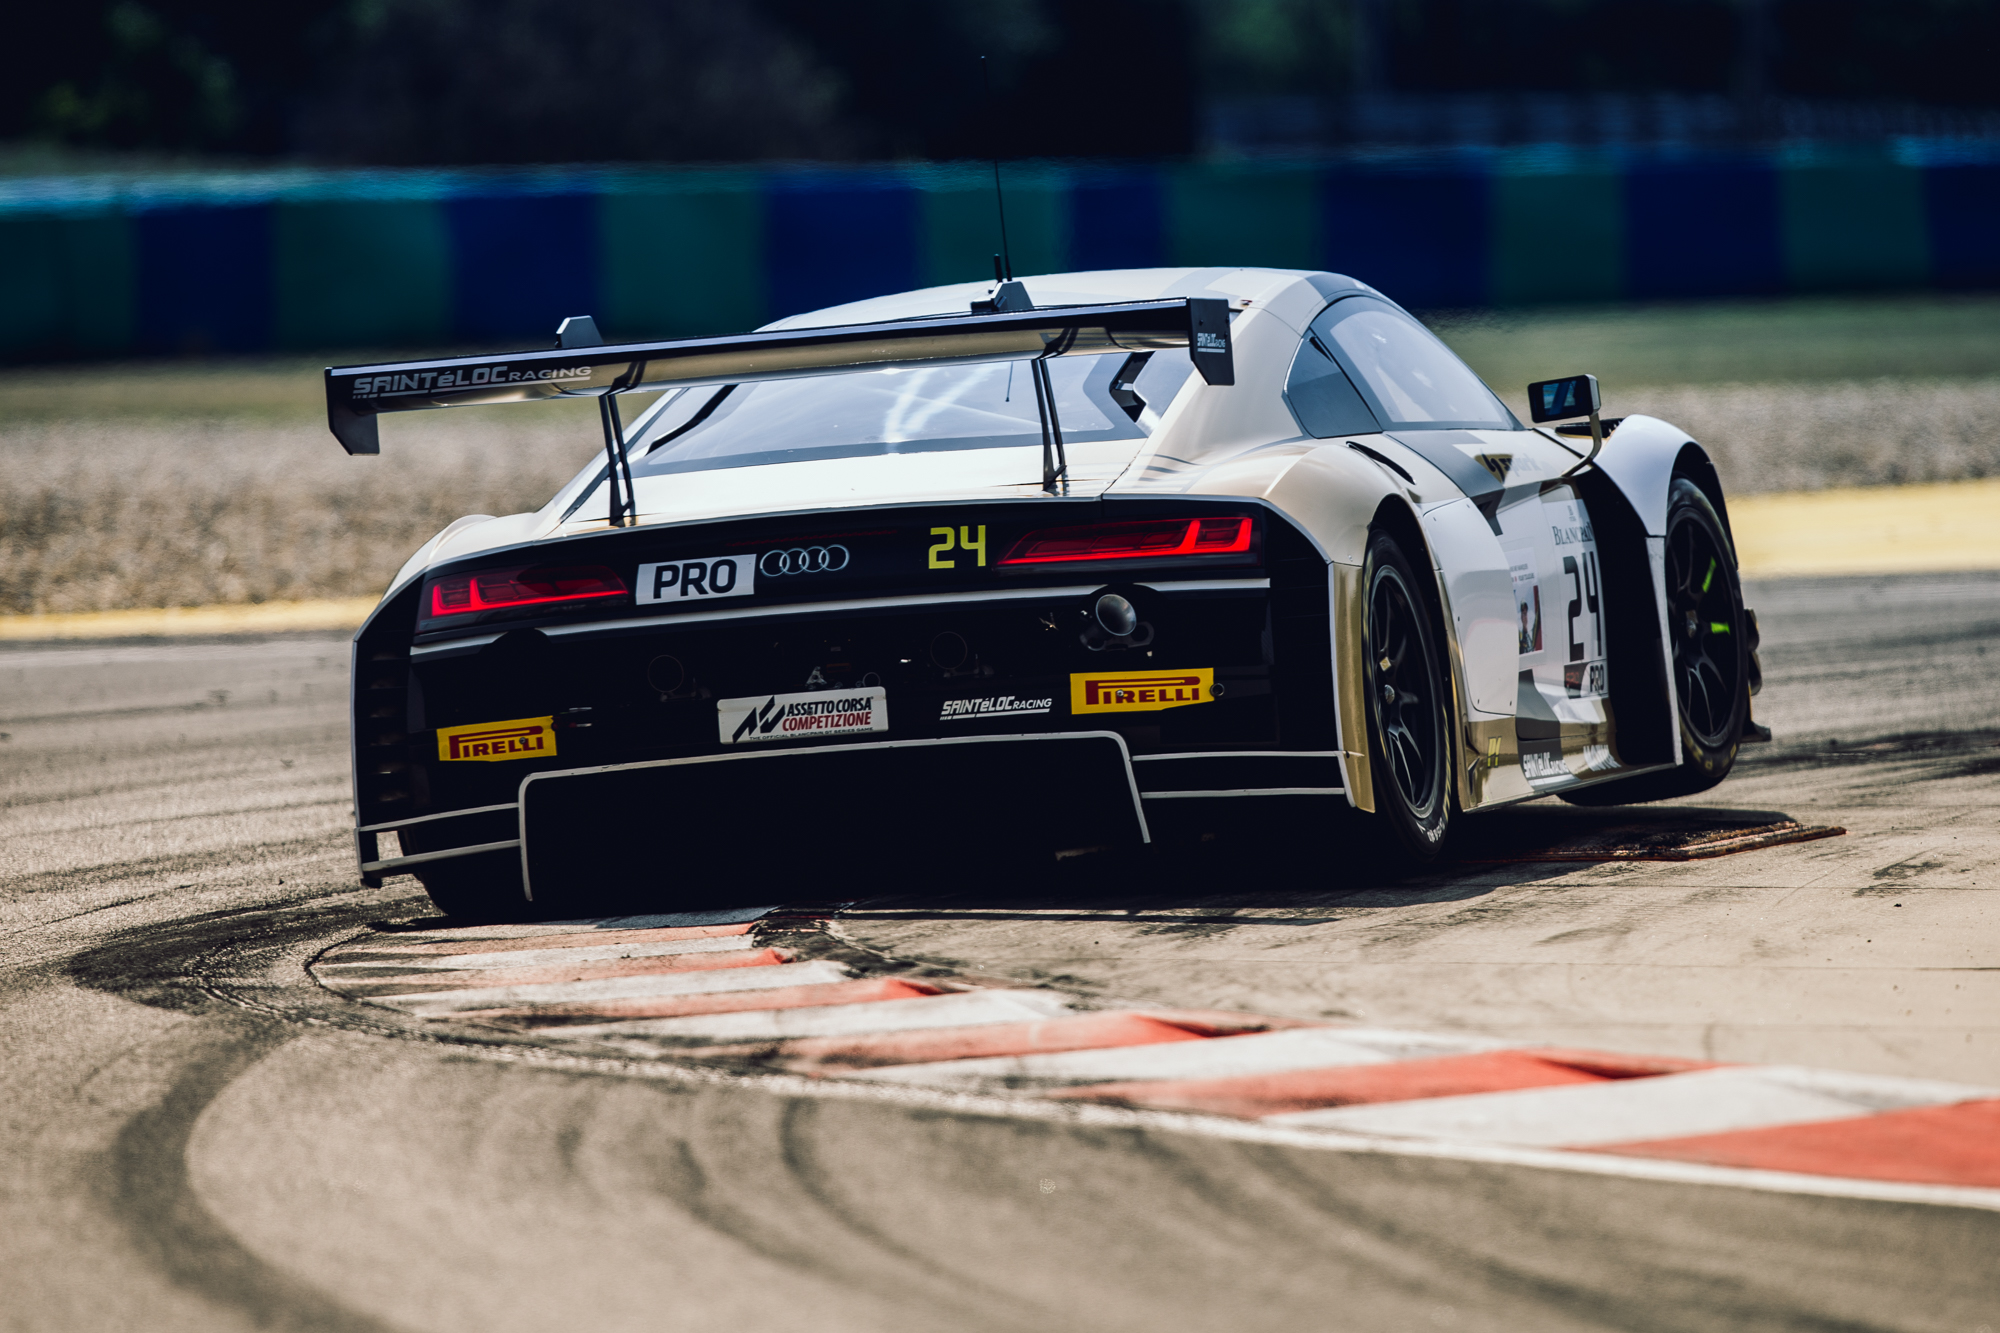 Blancpain Hungaroring 2019 - Photo by Michele Scudiero